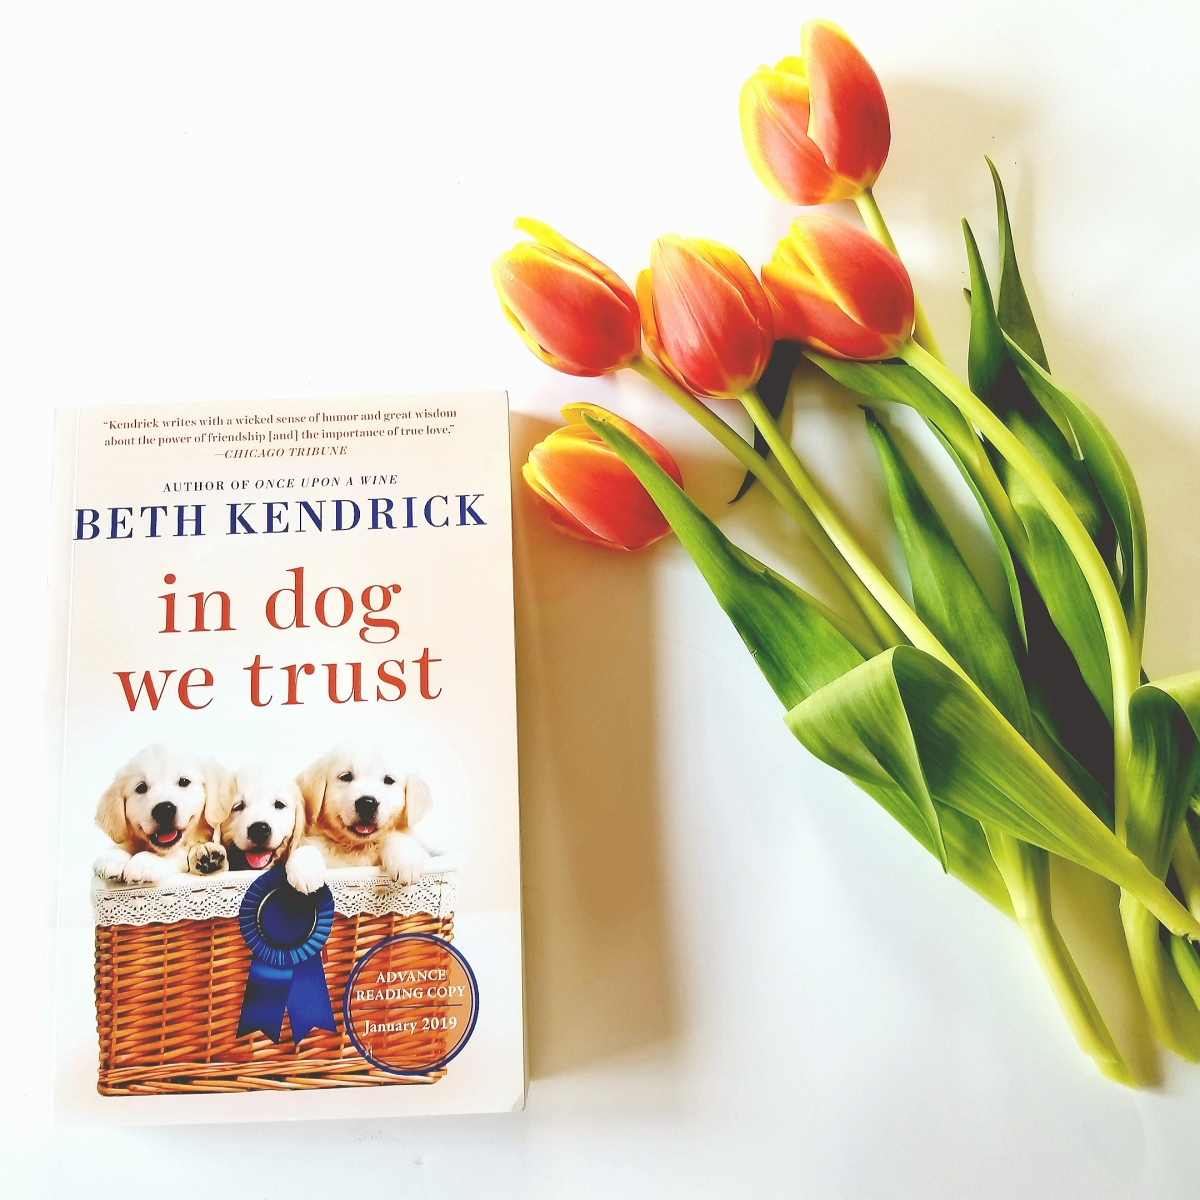 In Dog We Trust by Beth Kendrick #bookreview #tarheelreader #thrindogwetrust @bkendrickbooks @berkleypub #indogwetrust #bookbestiesindogwetrust #blogtour #bookgiveaway